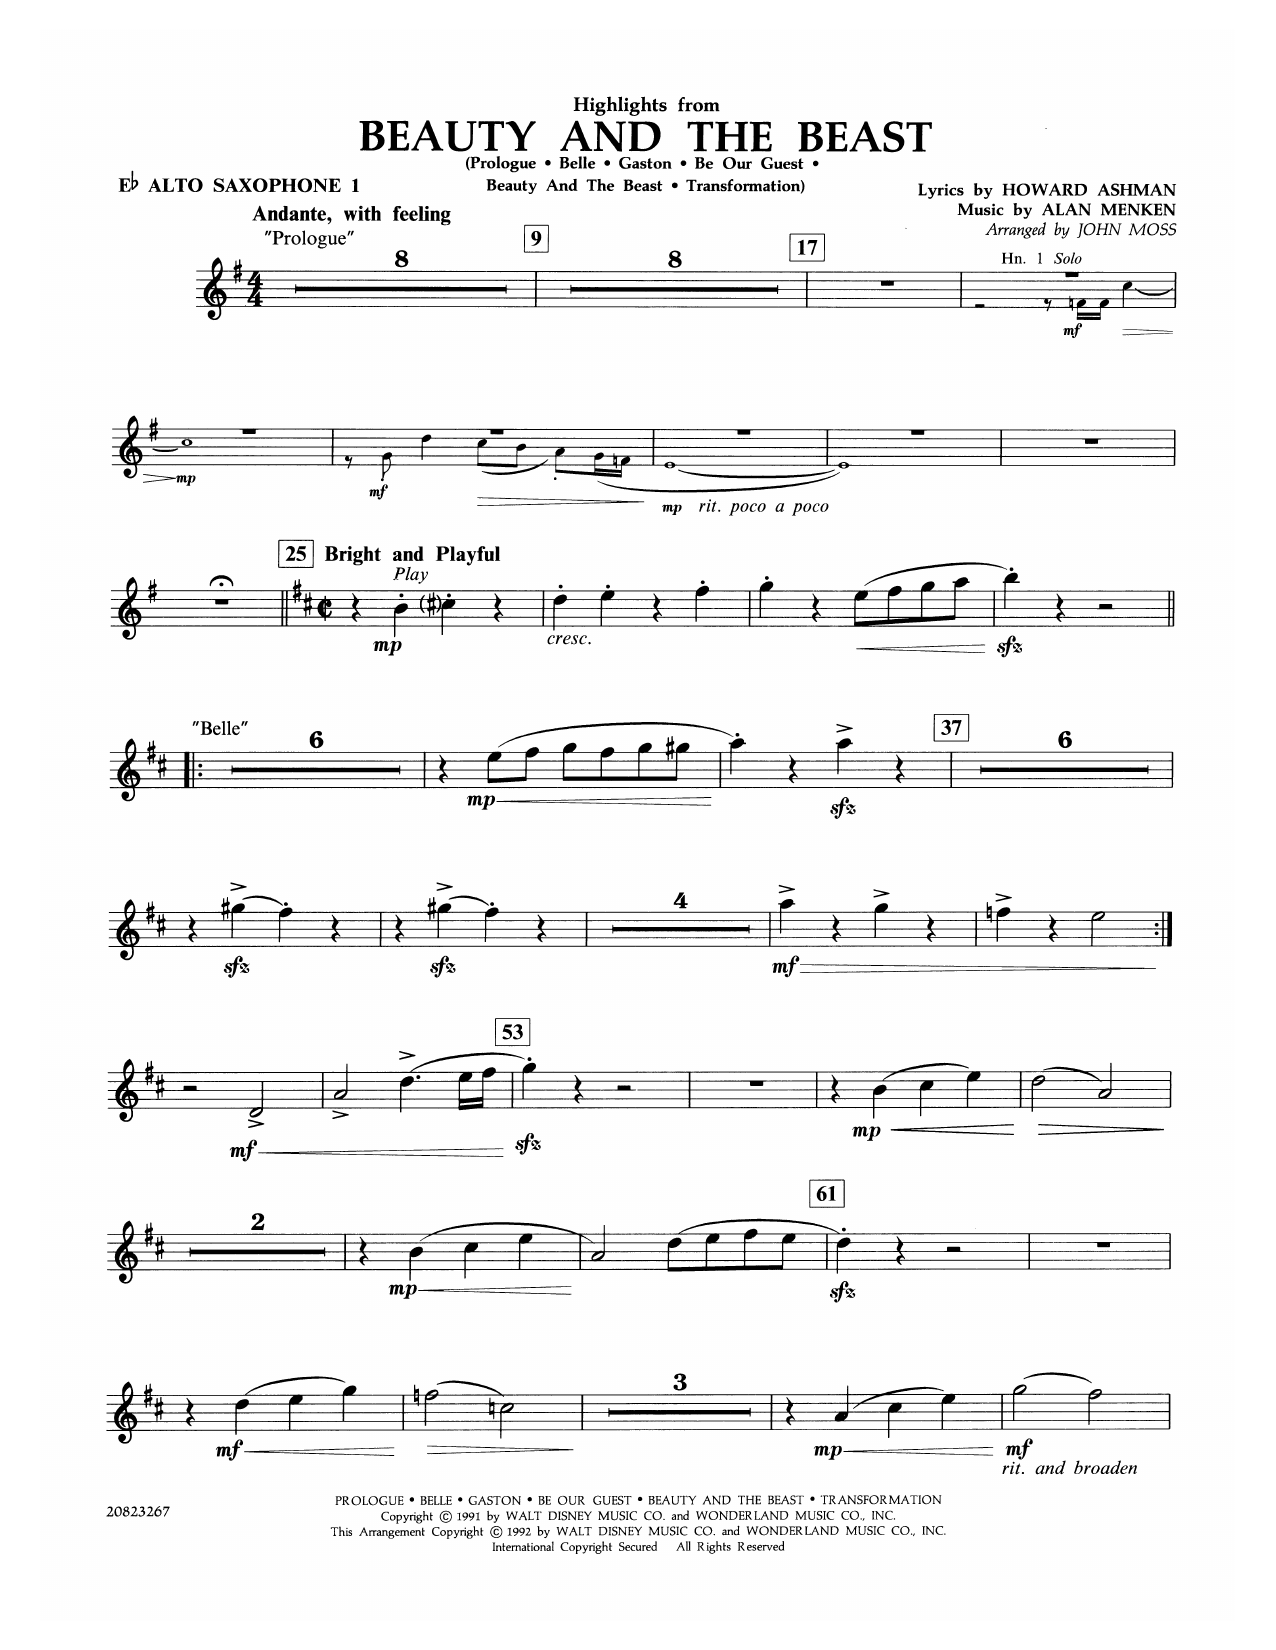 Highlights from Beauty and the Beast - Eb Alto Saxophone 1 Sheet Music